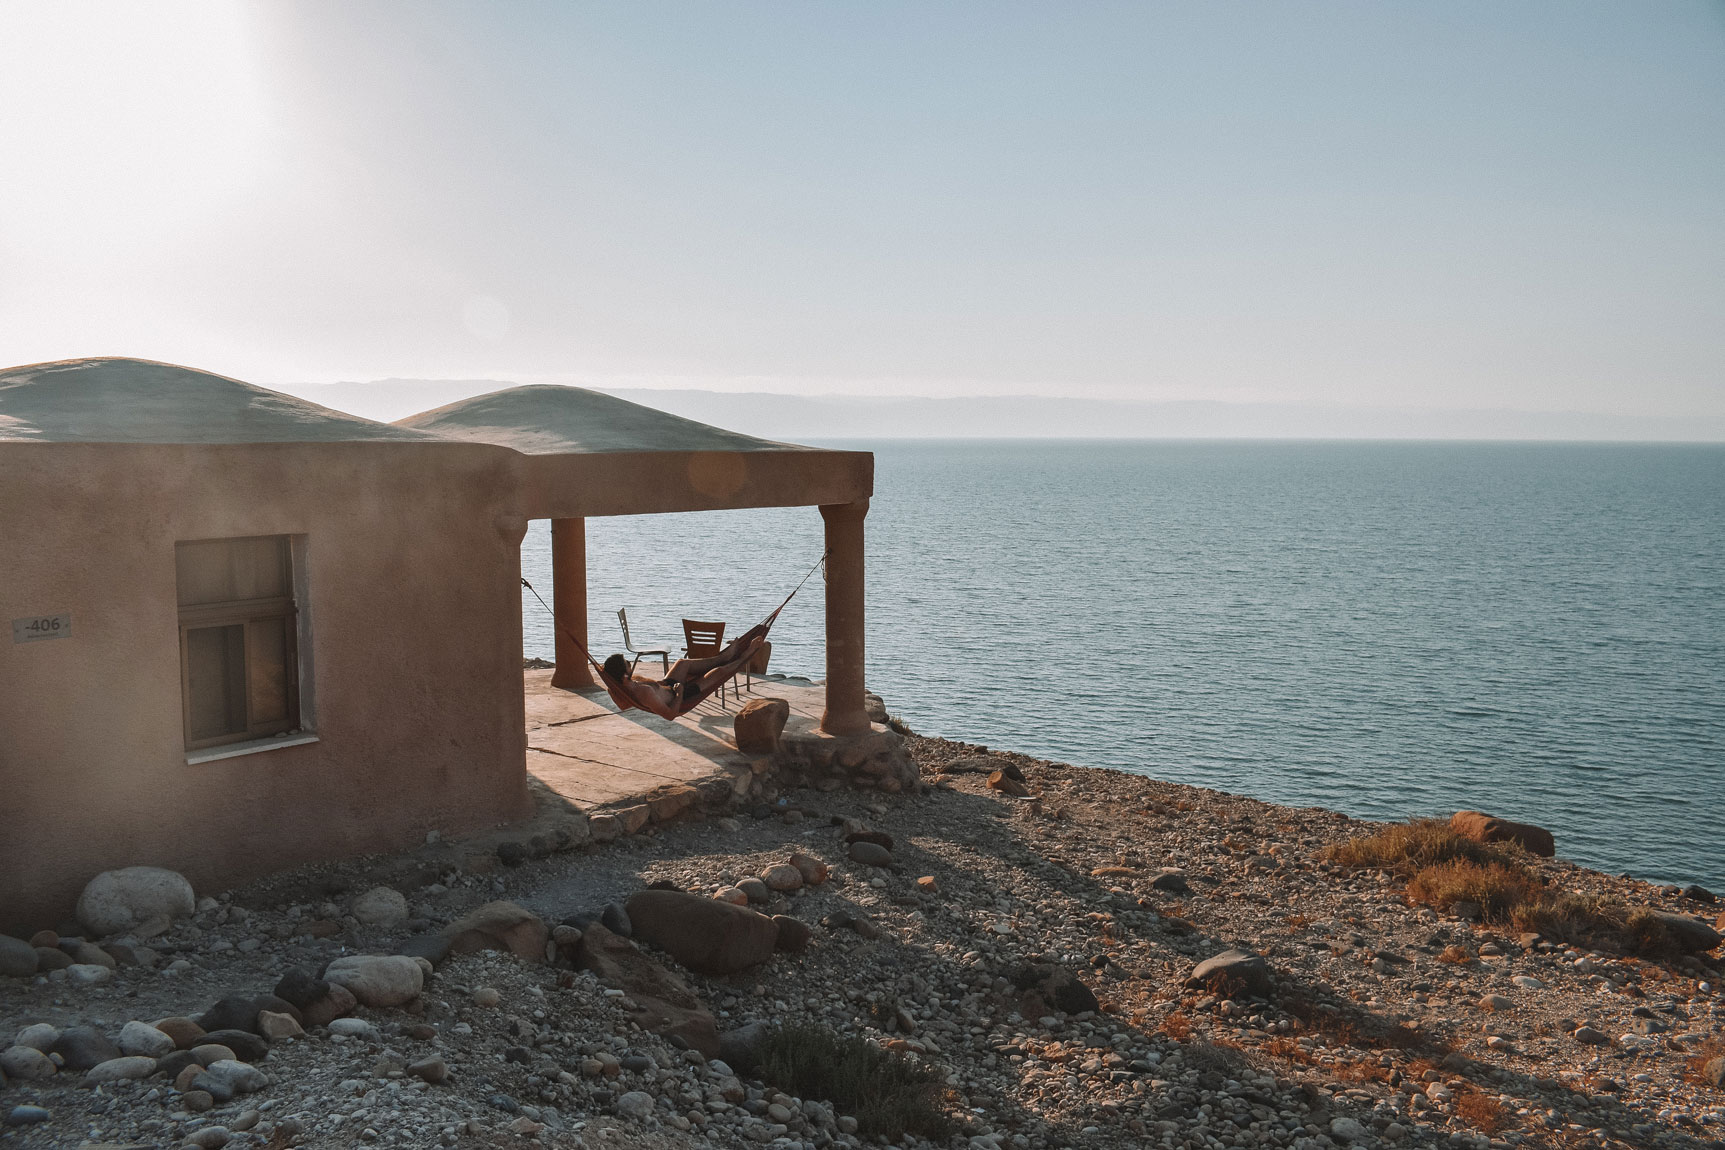 Mujib Chalets Overlooking Red Sea in Jordan